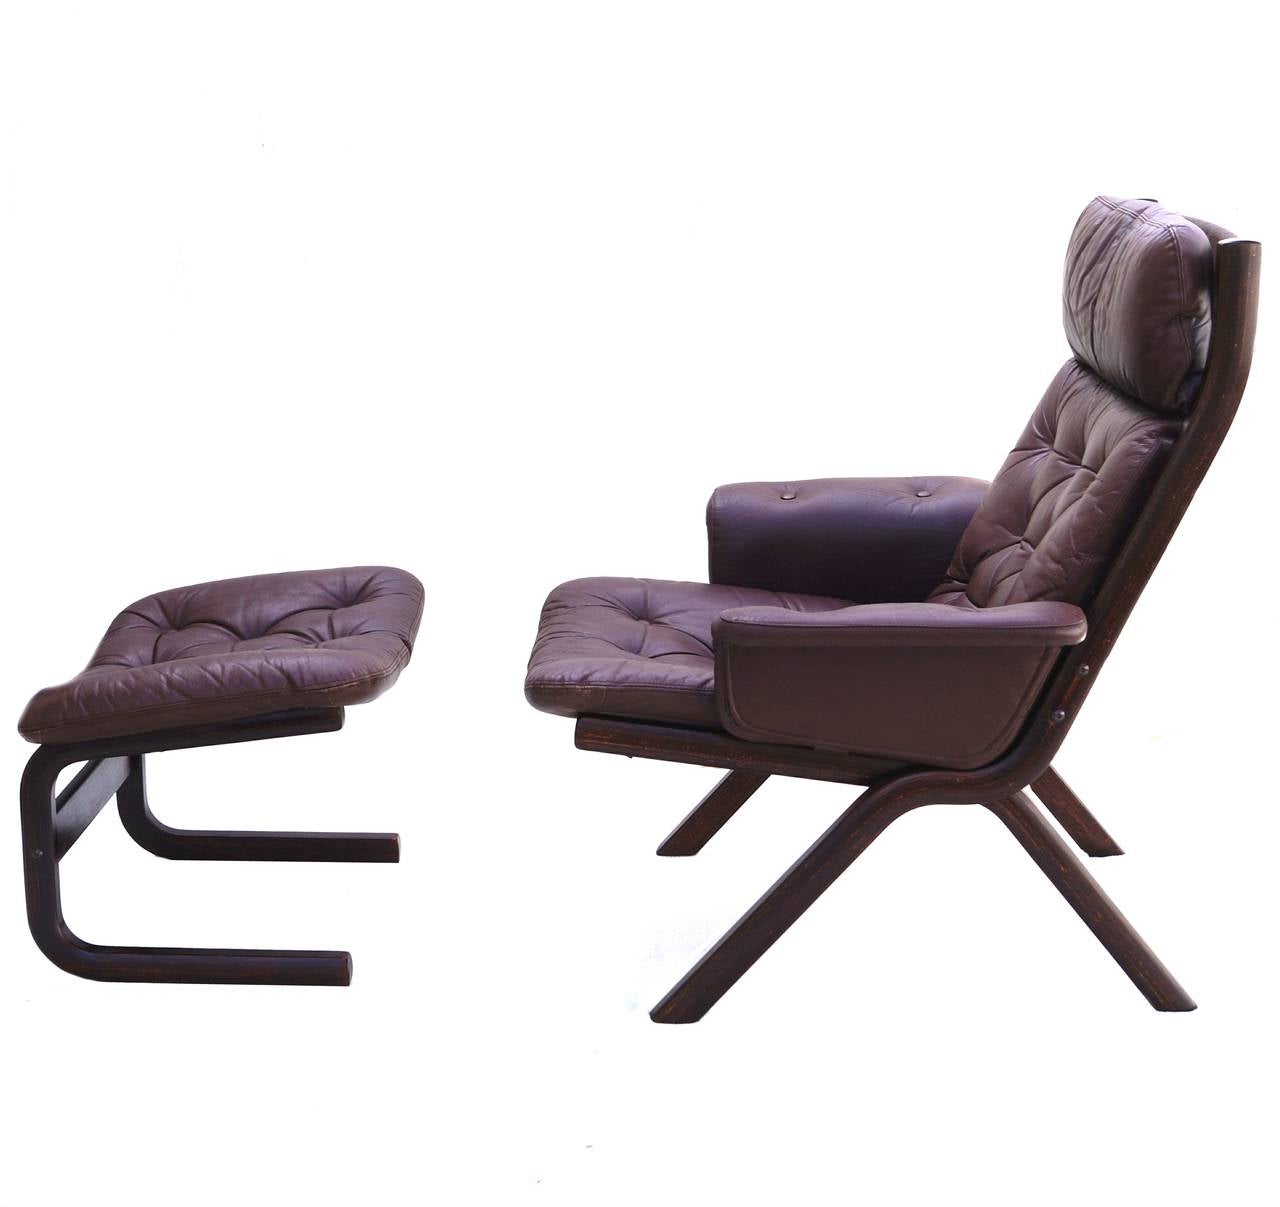 Modern sling chairs - Danish Modern Leather Sculptural Sling Lounge Chair And Ottoman 3